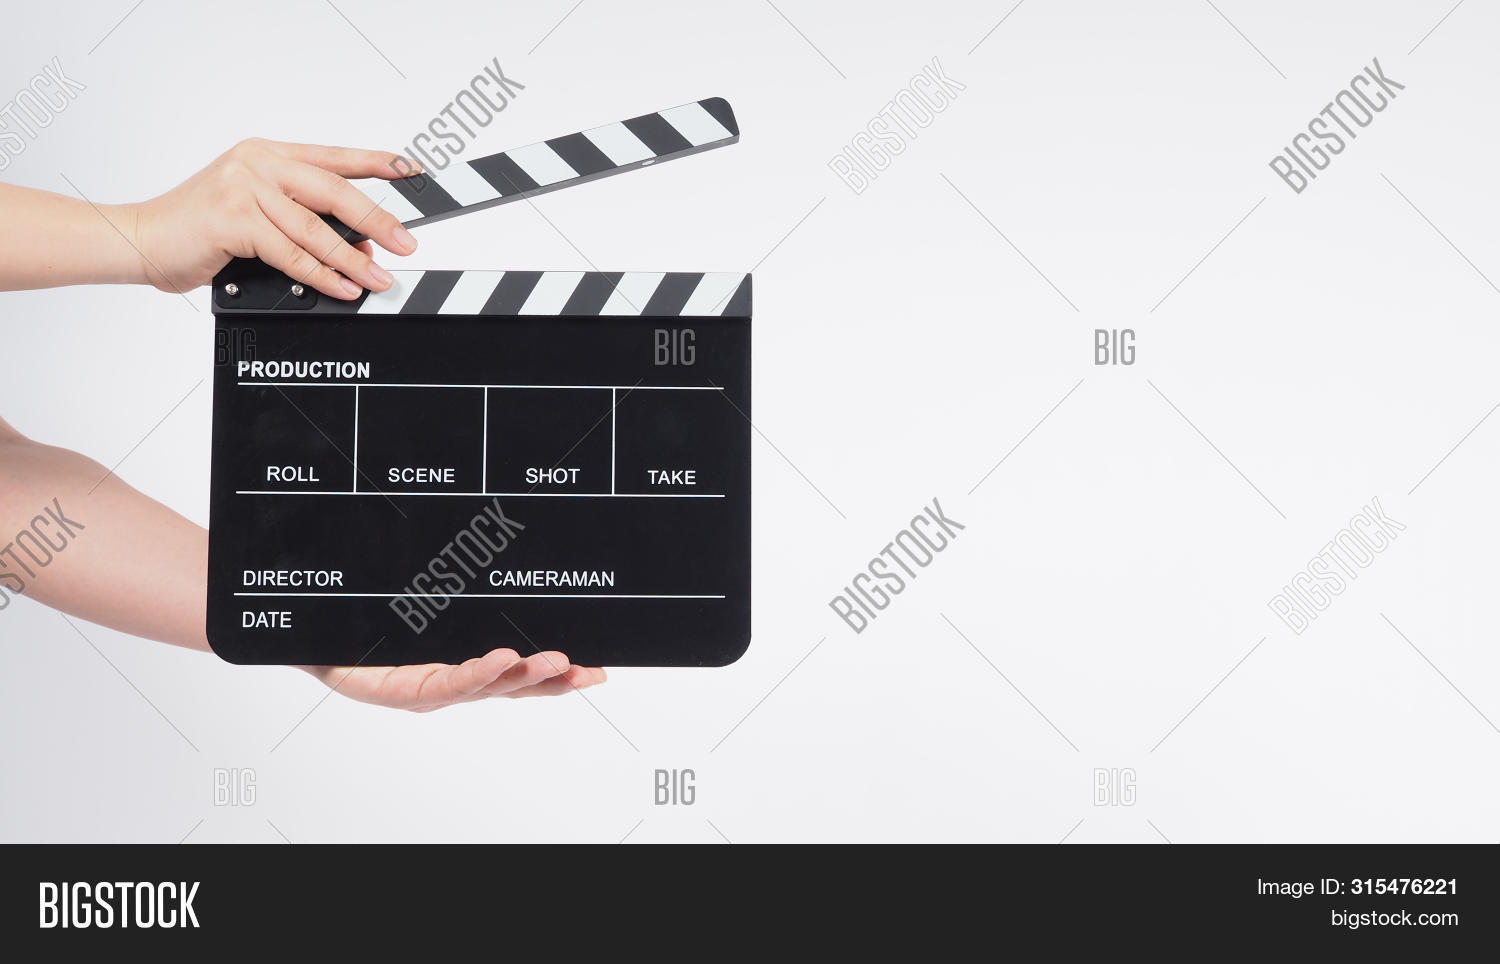 acting,action,and,background,black,blackboard,board,camera,cameraman,chair,chalk,chalkboard,cinema,cinematography,clap,clapboard,clapperboard,crew,cut,director,entertainment,equipment,film,filmmaker,filmography,hand,holding,human,industry,light,media,motion,movie,movies,one,person,picture,producer,production,scene,shot,slate,studio,take,television,video,videography,white,woman:film